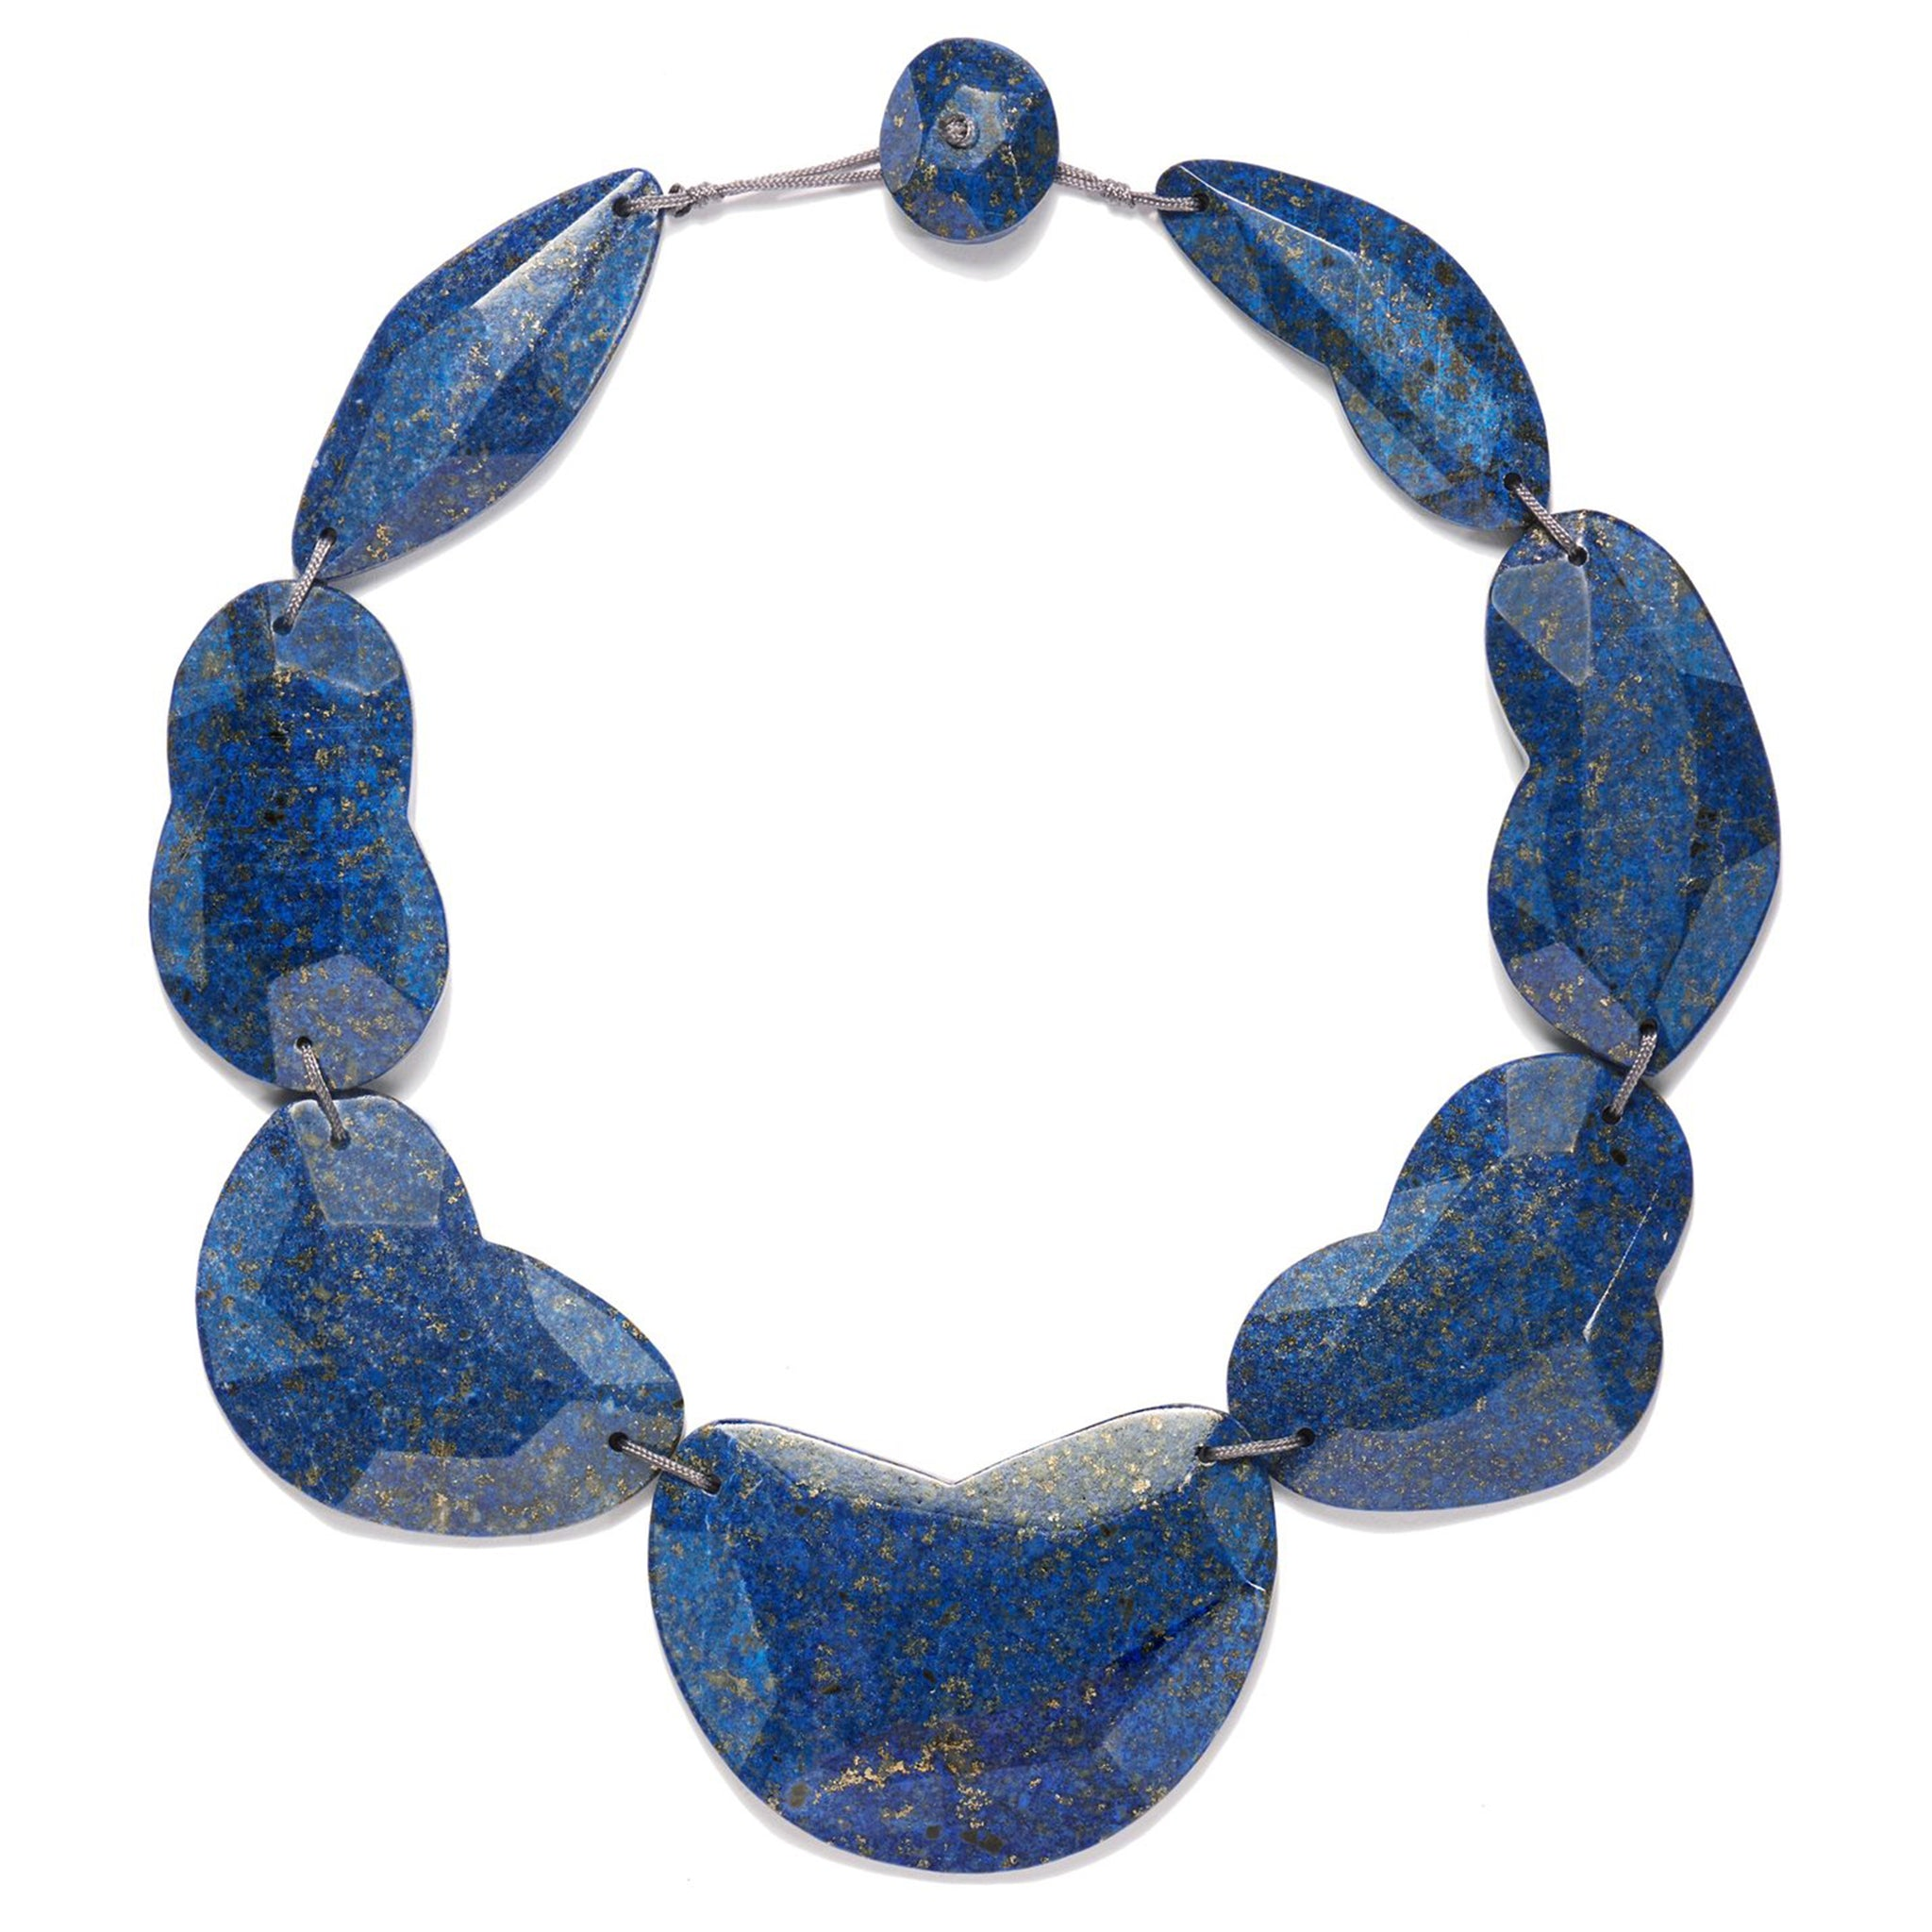 Faceted Lapis Lazuli Cloud Necklace